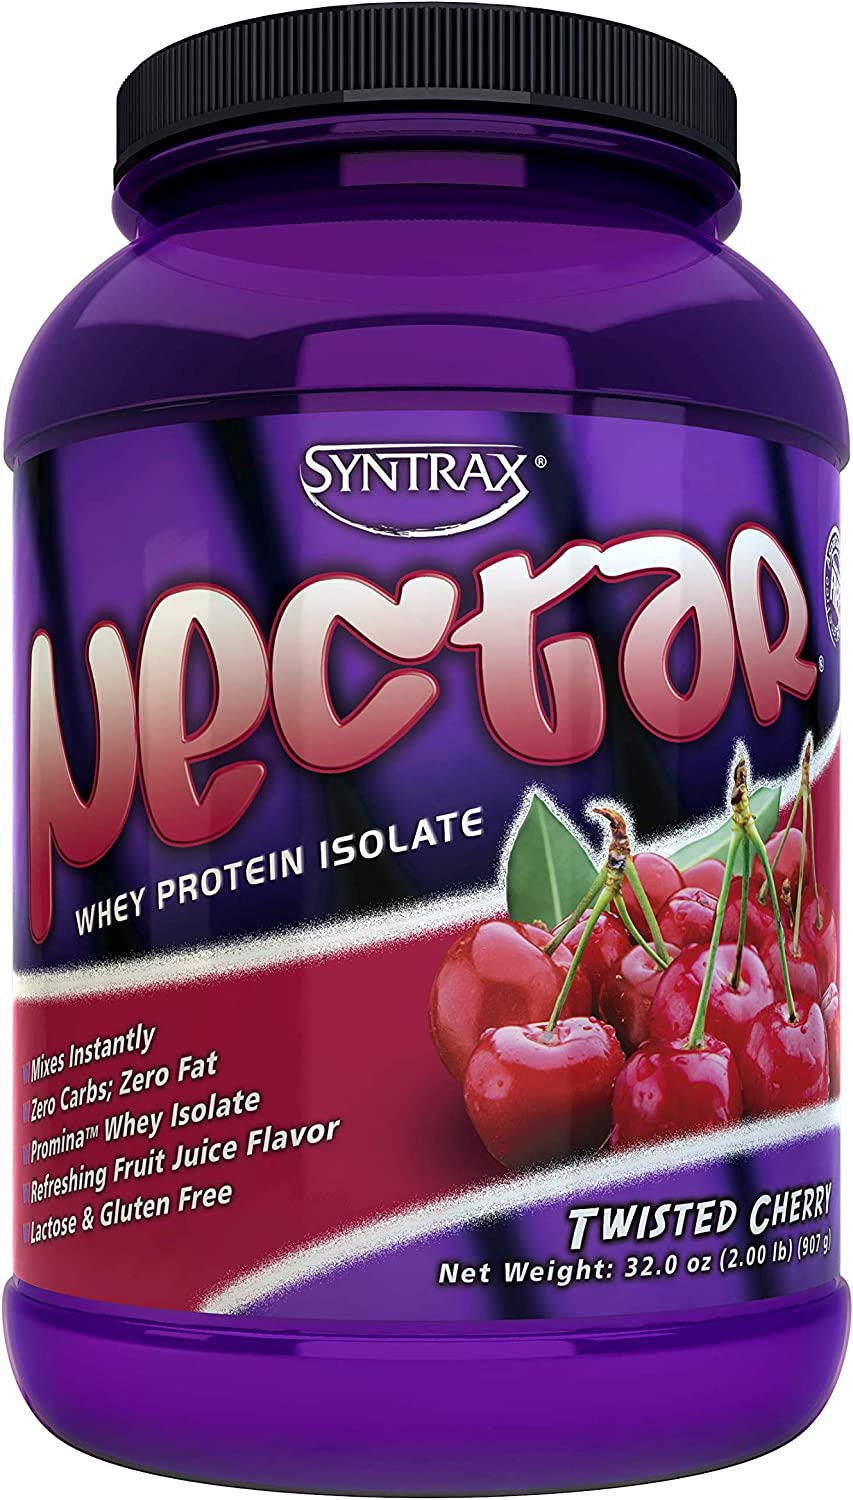 Syntrax Syntrax Nectar, Twisted Cherry, 2.0 Pounds, Twisted Cherry, 2.00, 2.00 Pound